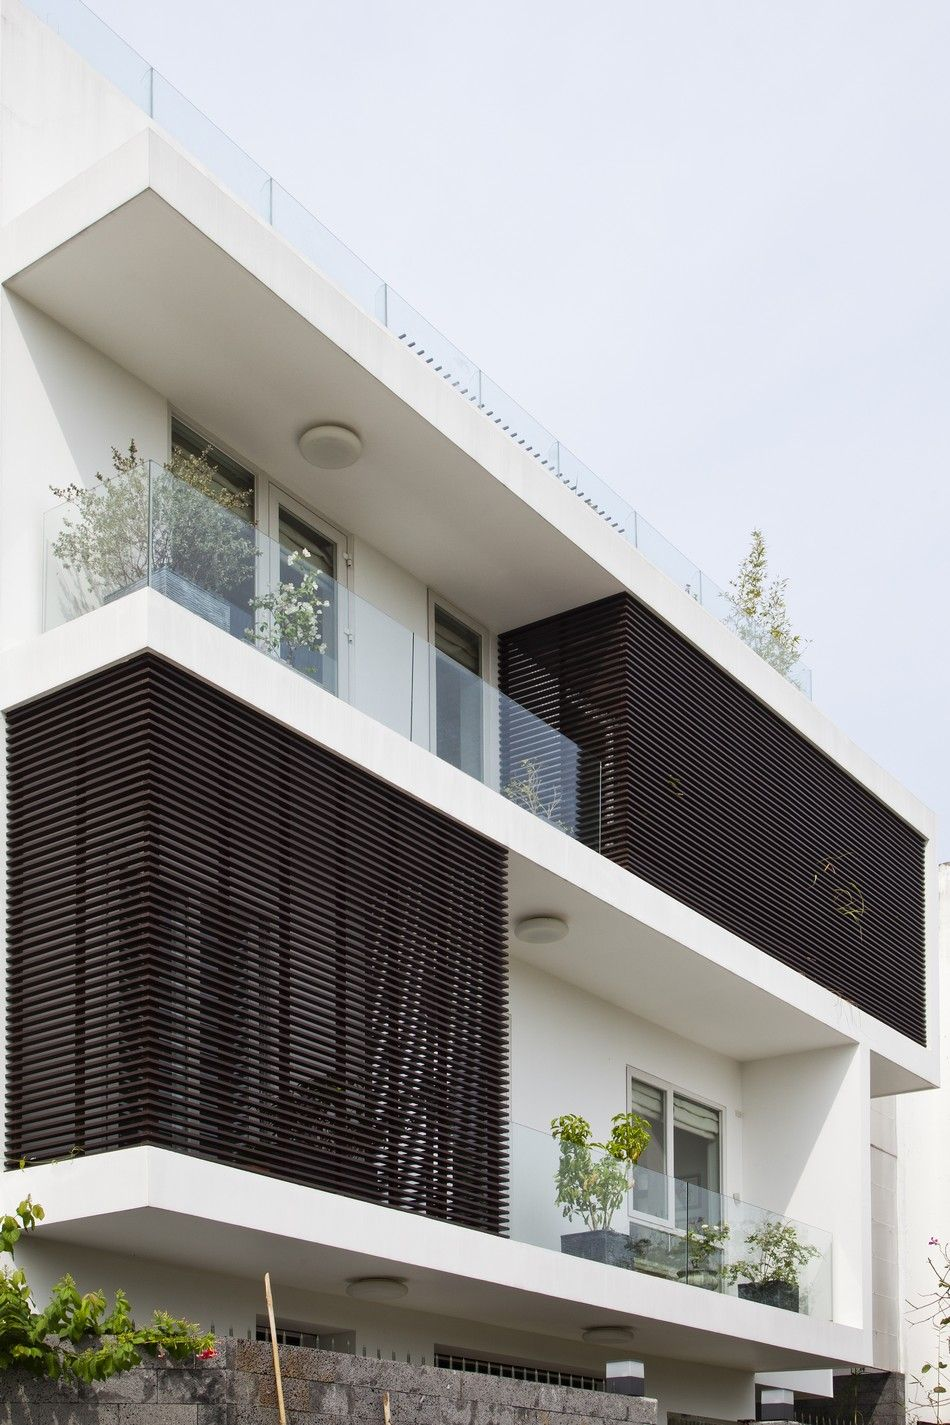 1000+ images about esidential rchitecture on Pinterest Modern ... - ^